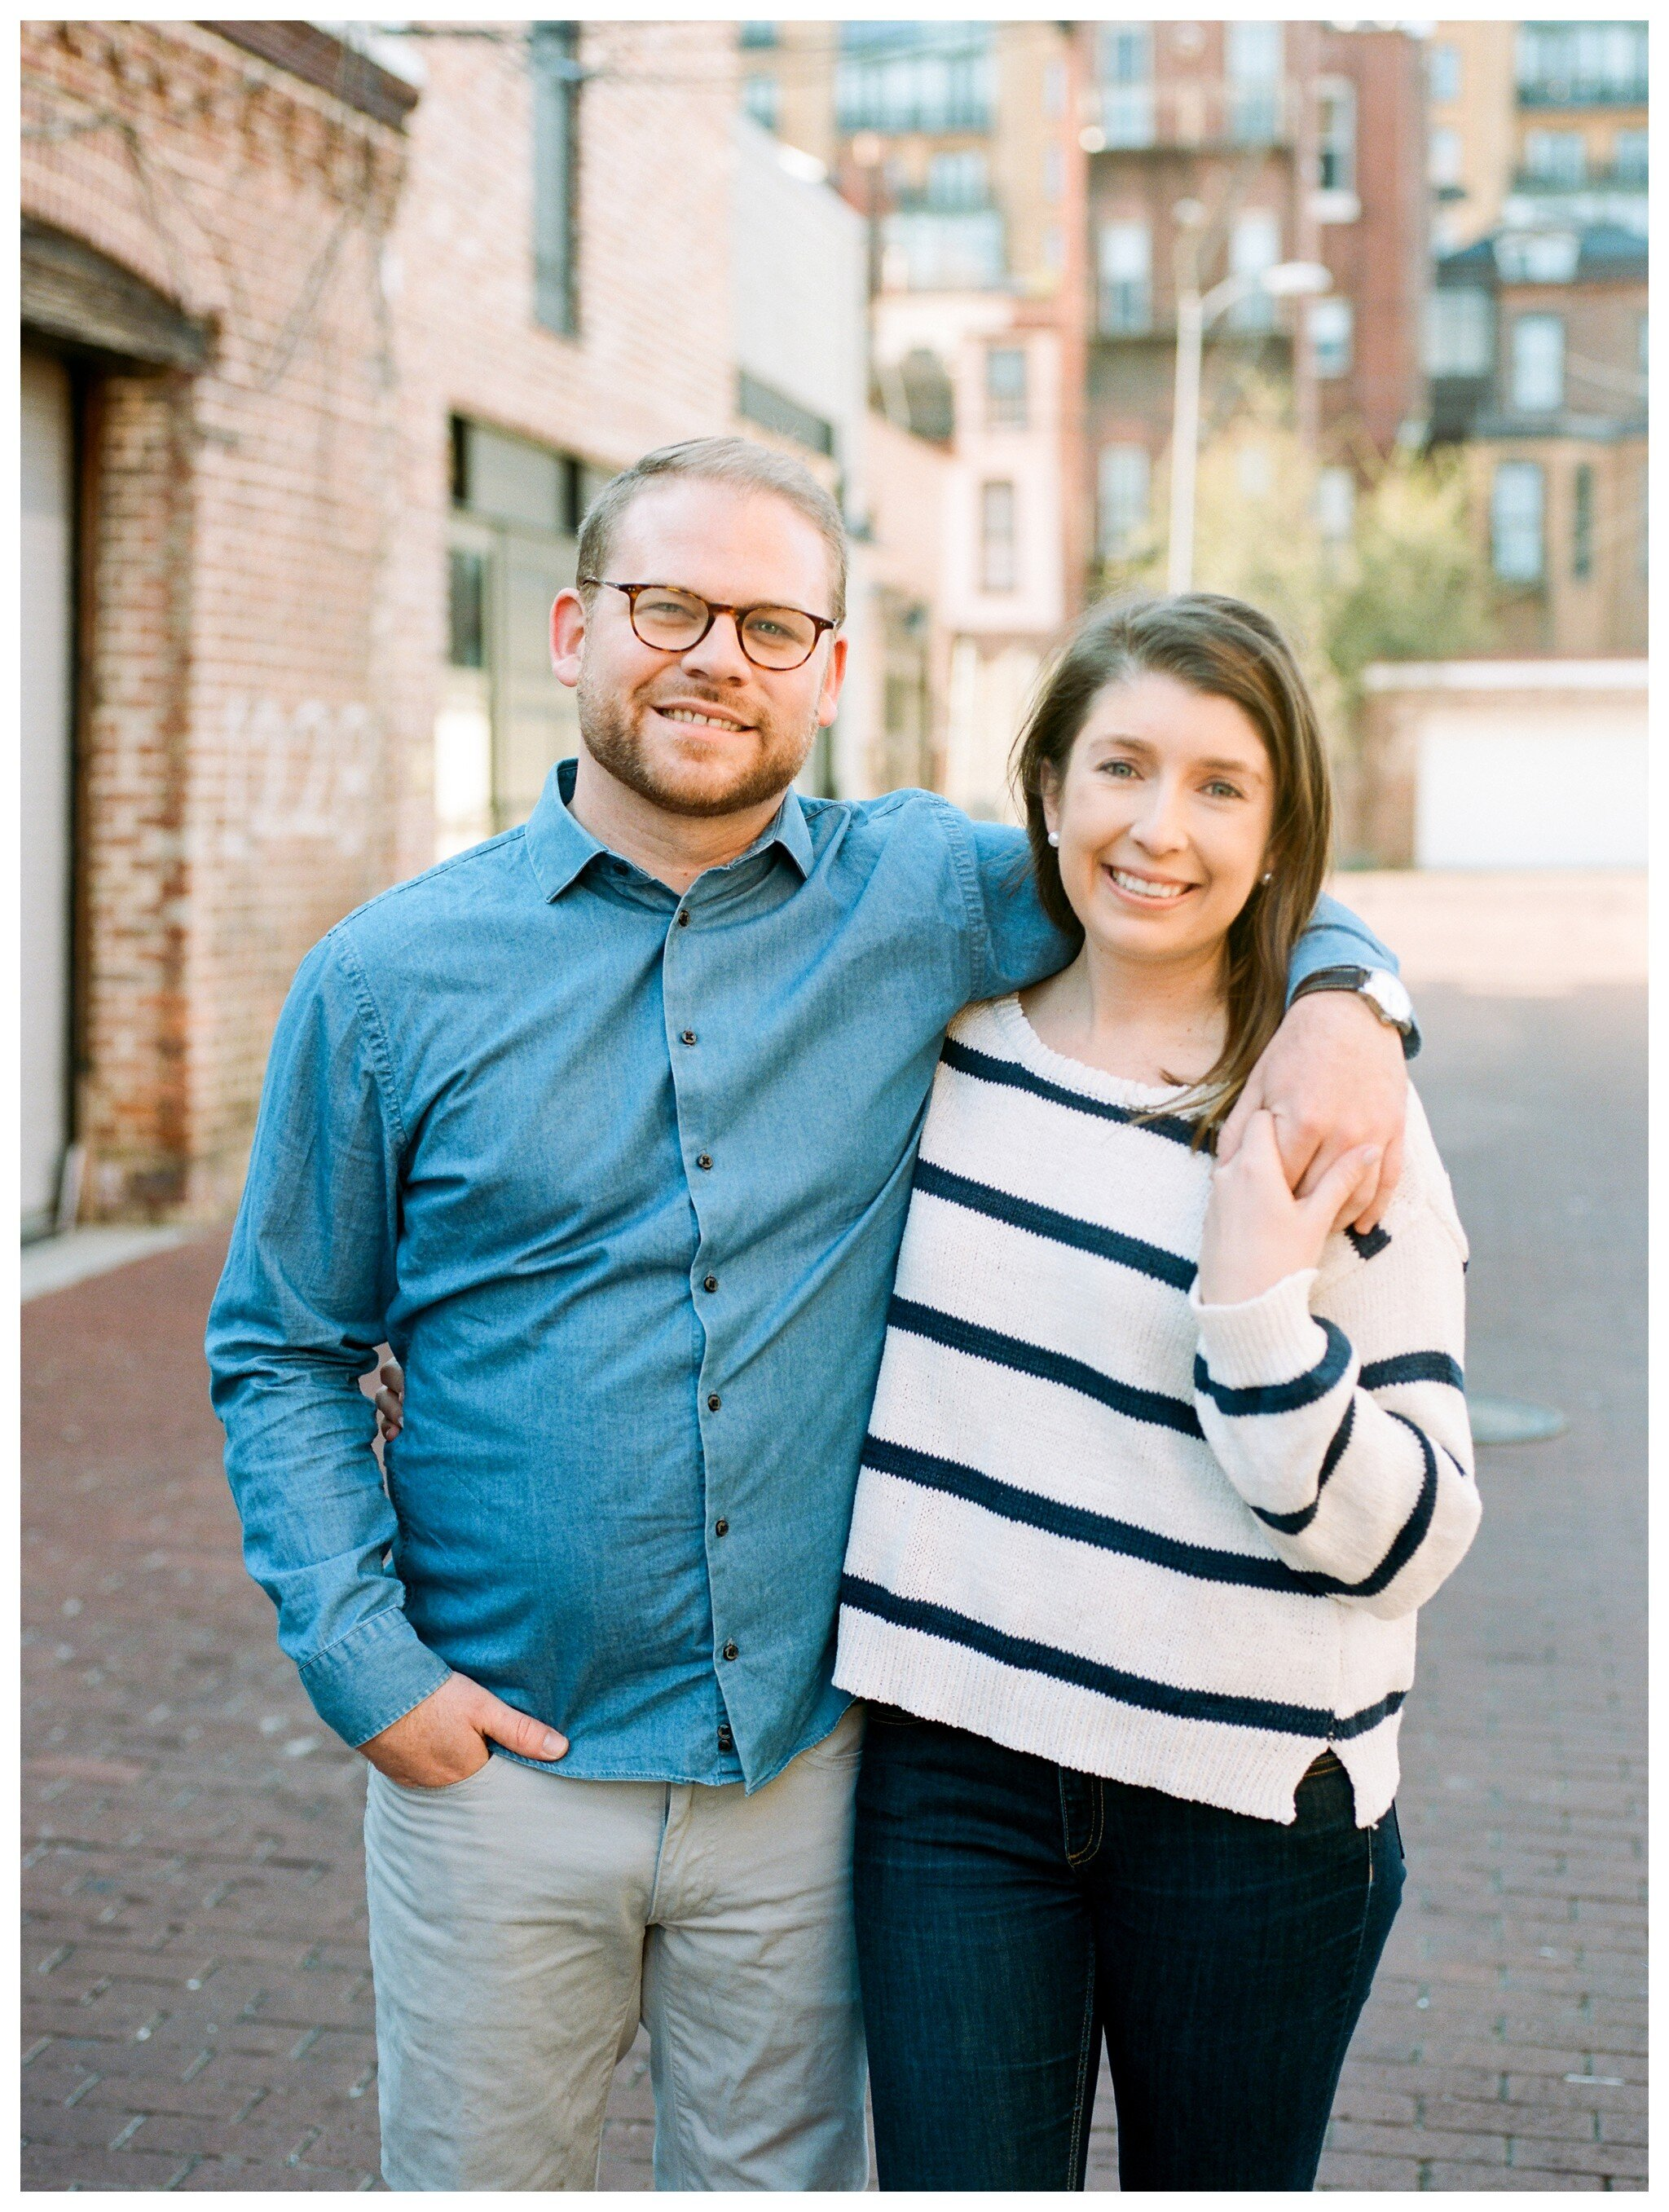 Spring Blagden Alley Engagement Session in Washington DC by fine art wedding photographer Lissa Ryan Photography